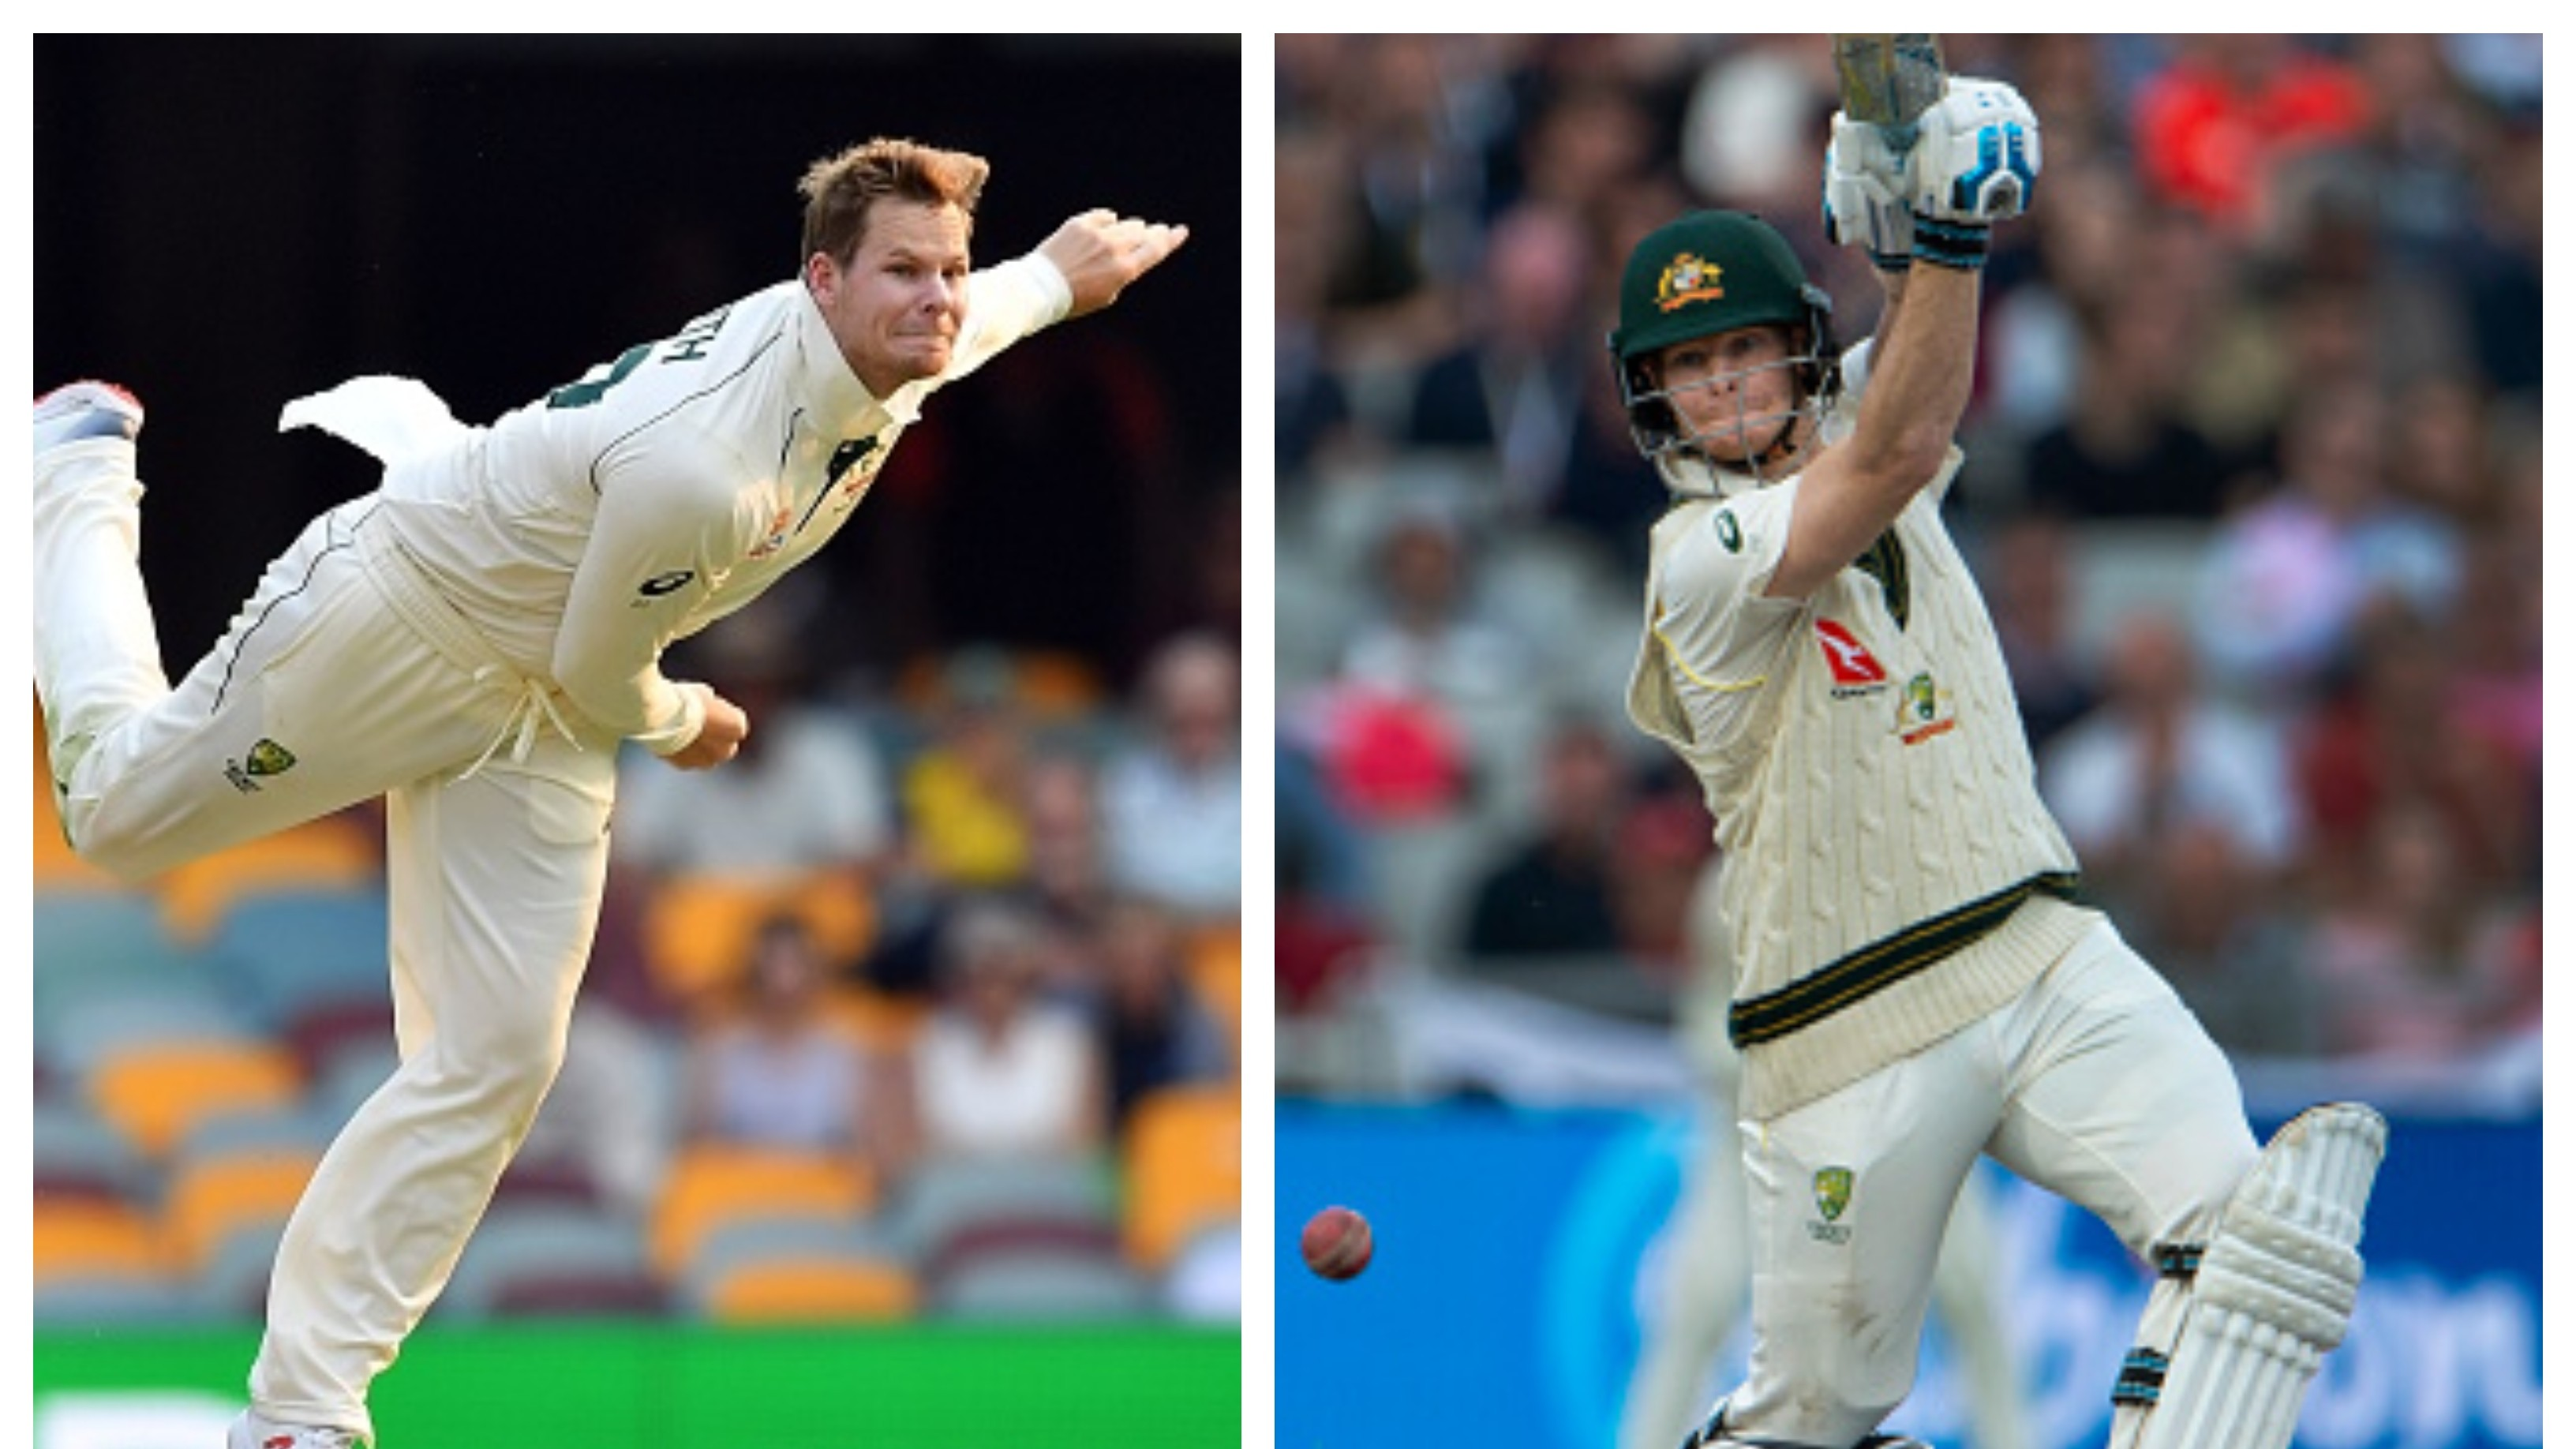 WATCH - Smith recalls how being dropped as bowler made him focus solely on batting